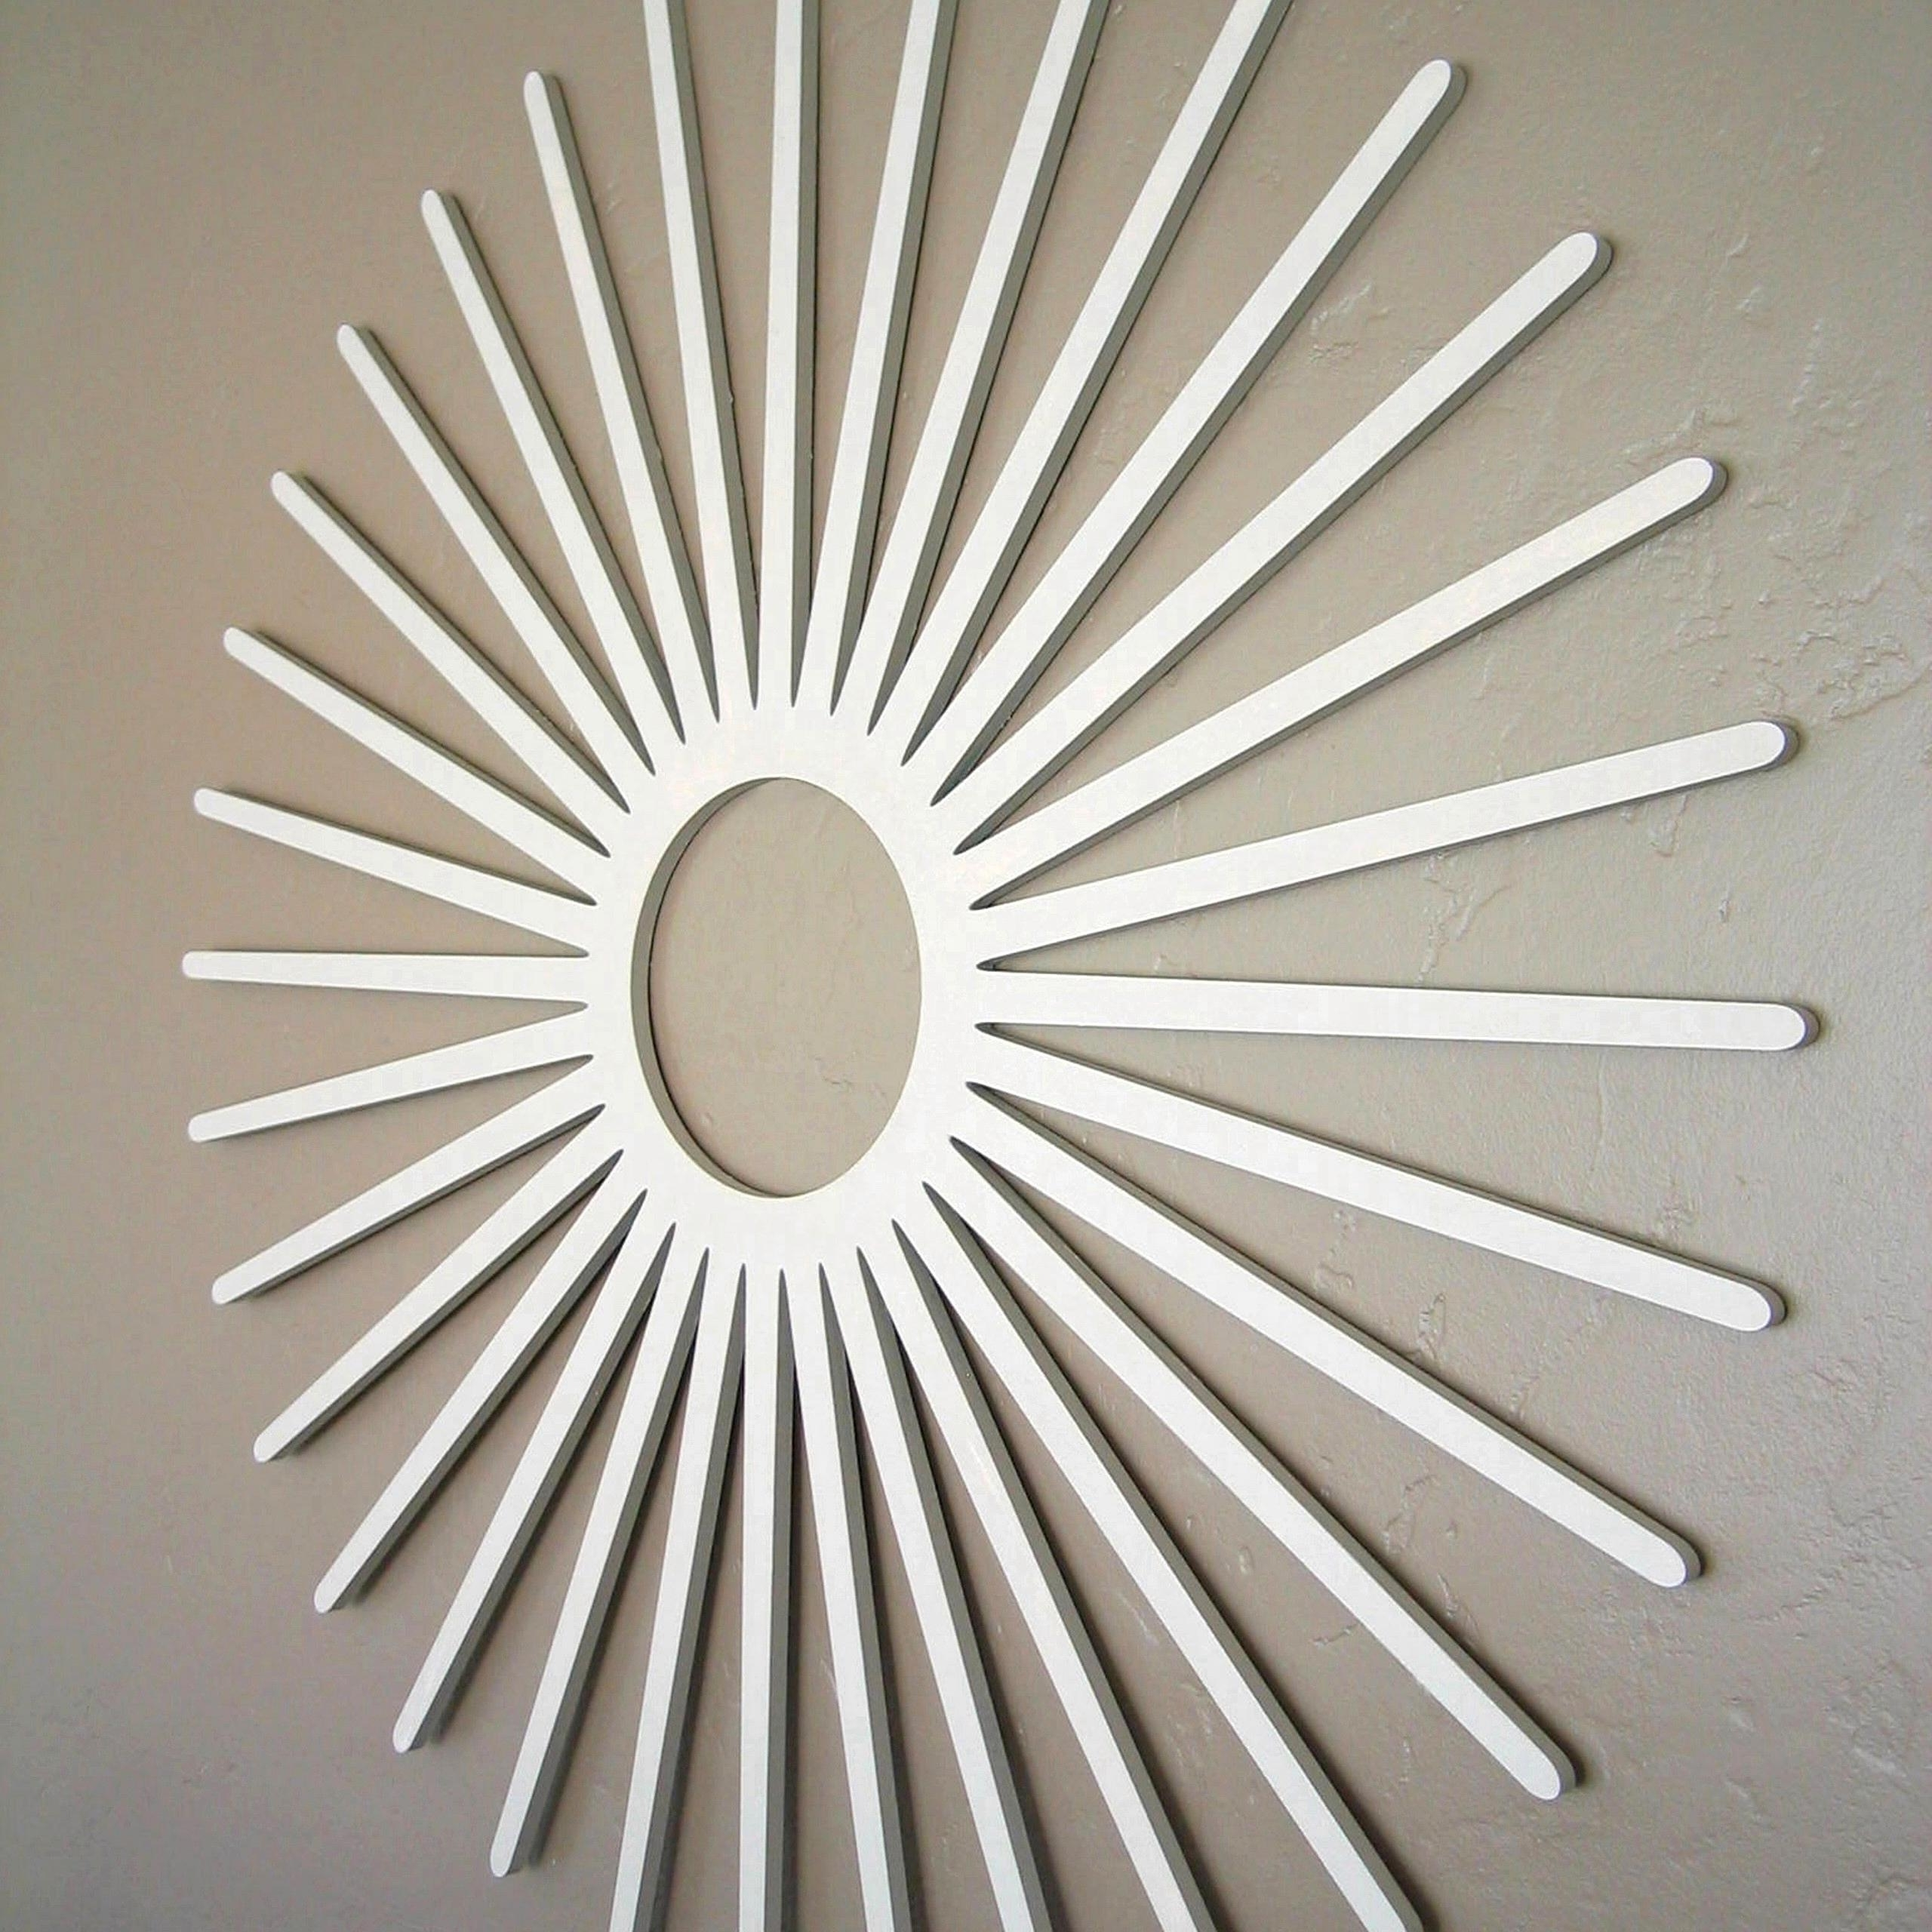 Recent Charming Post Starburst Wall Decor Ideas Decor Walmart Wall Decor With Silver Starburst Wall Art (View 6 of 15)